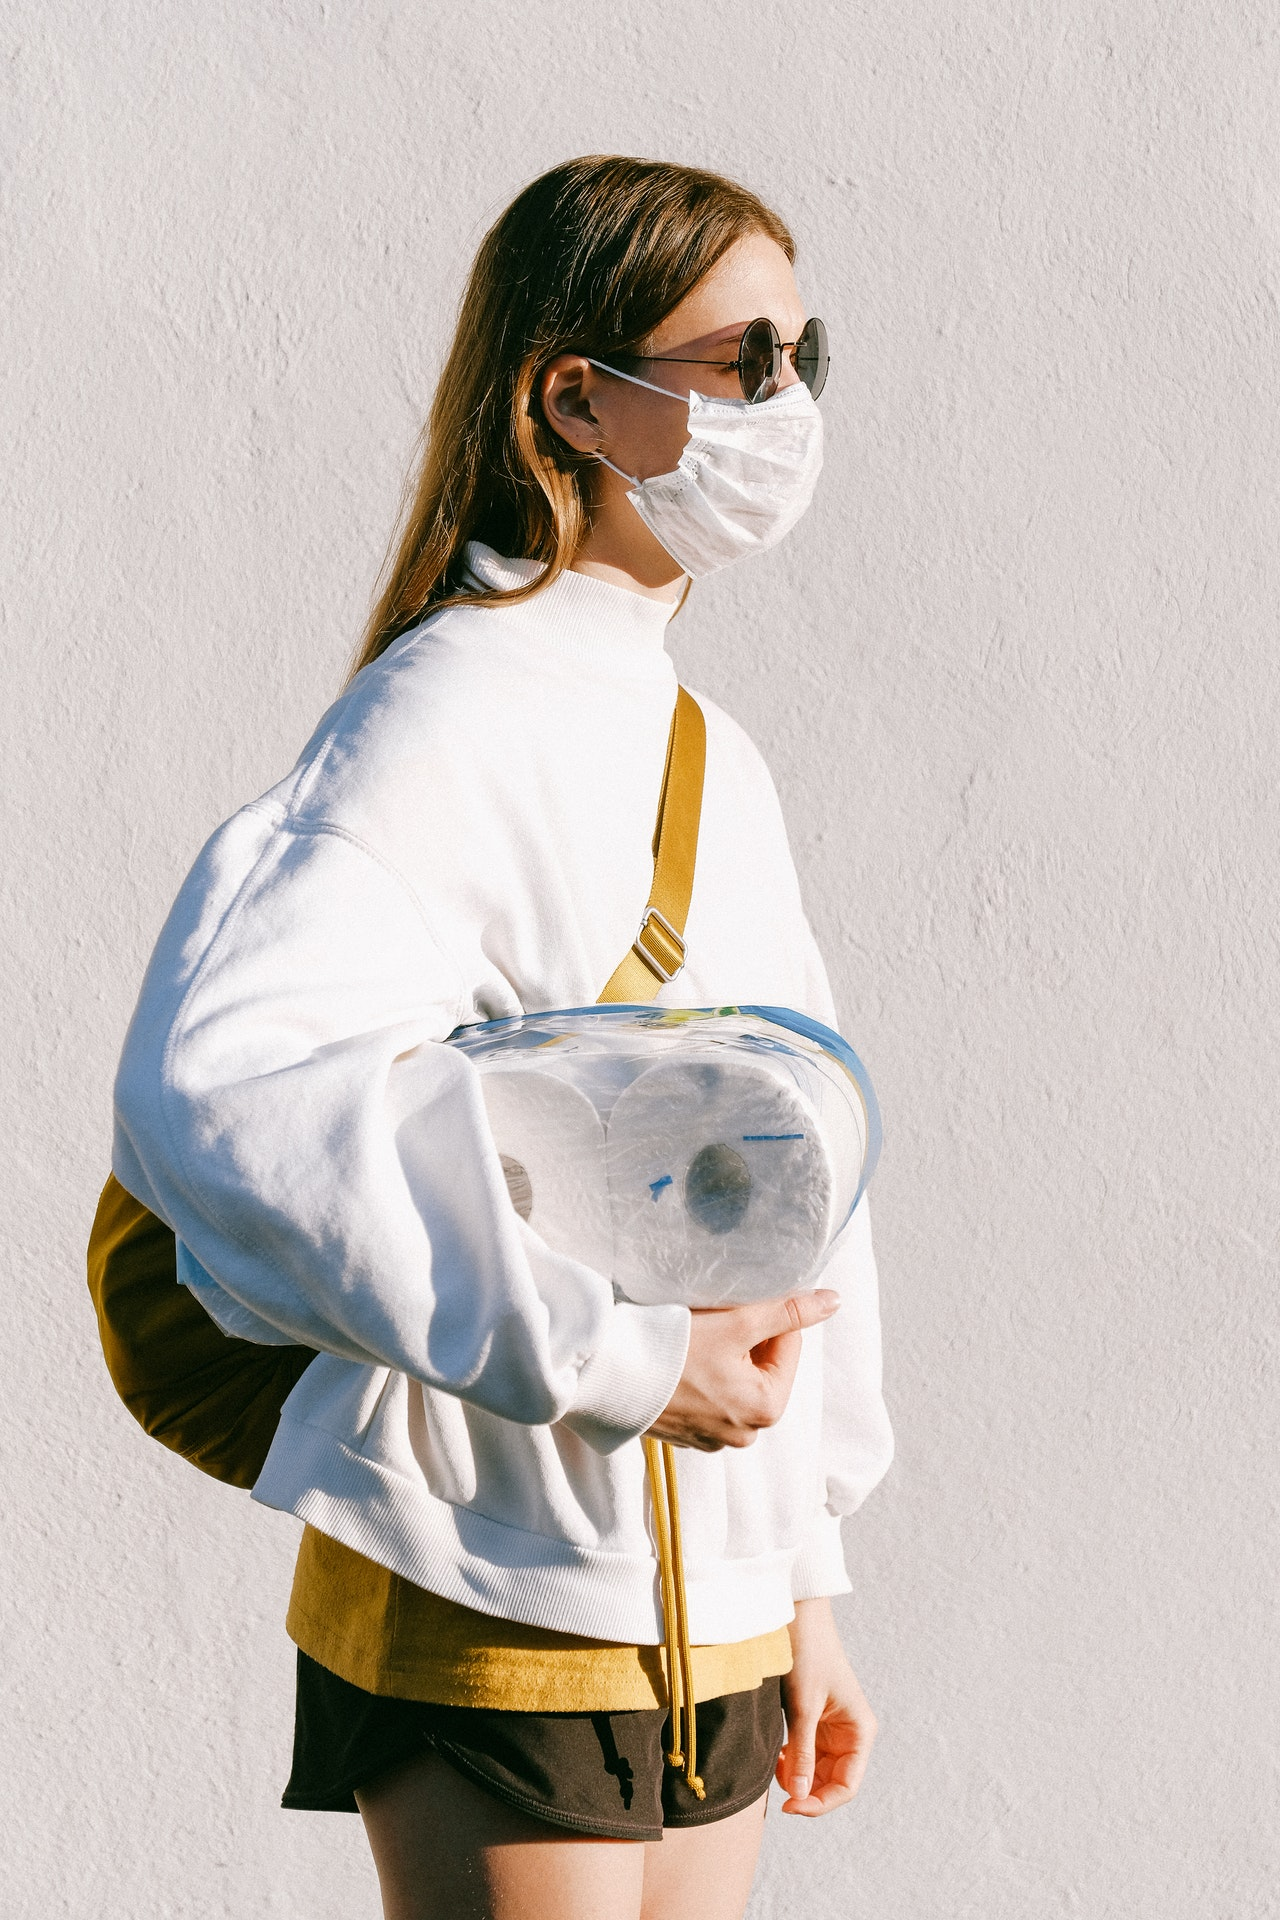 woman holding toilet paper and wearing face mask for coronavirus